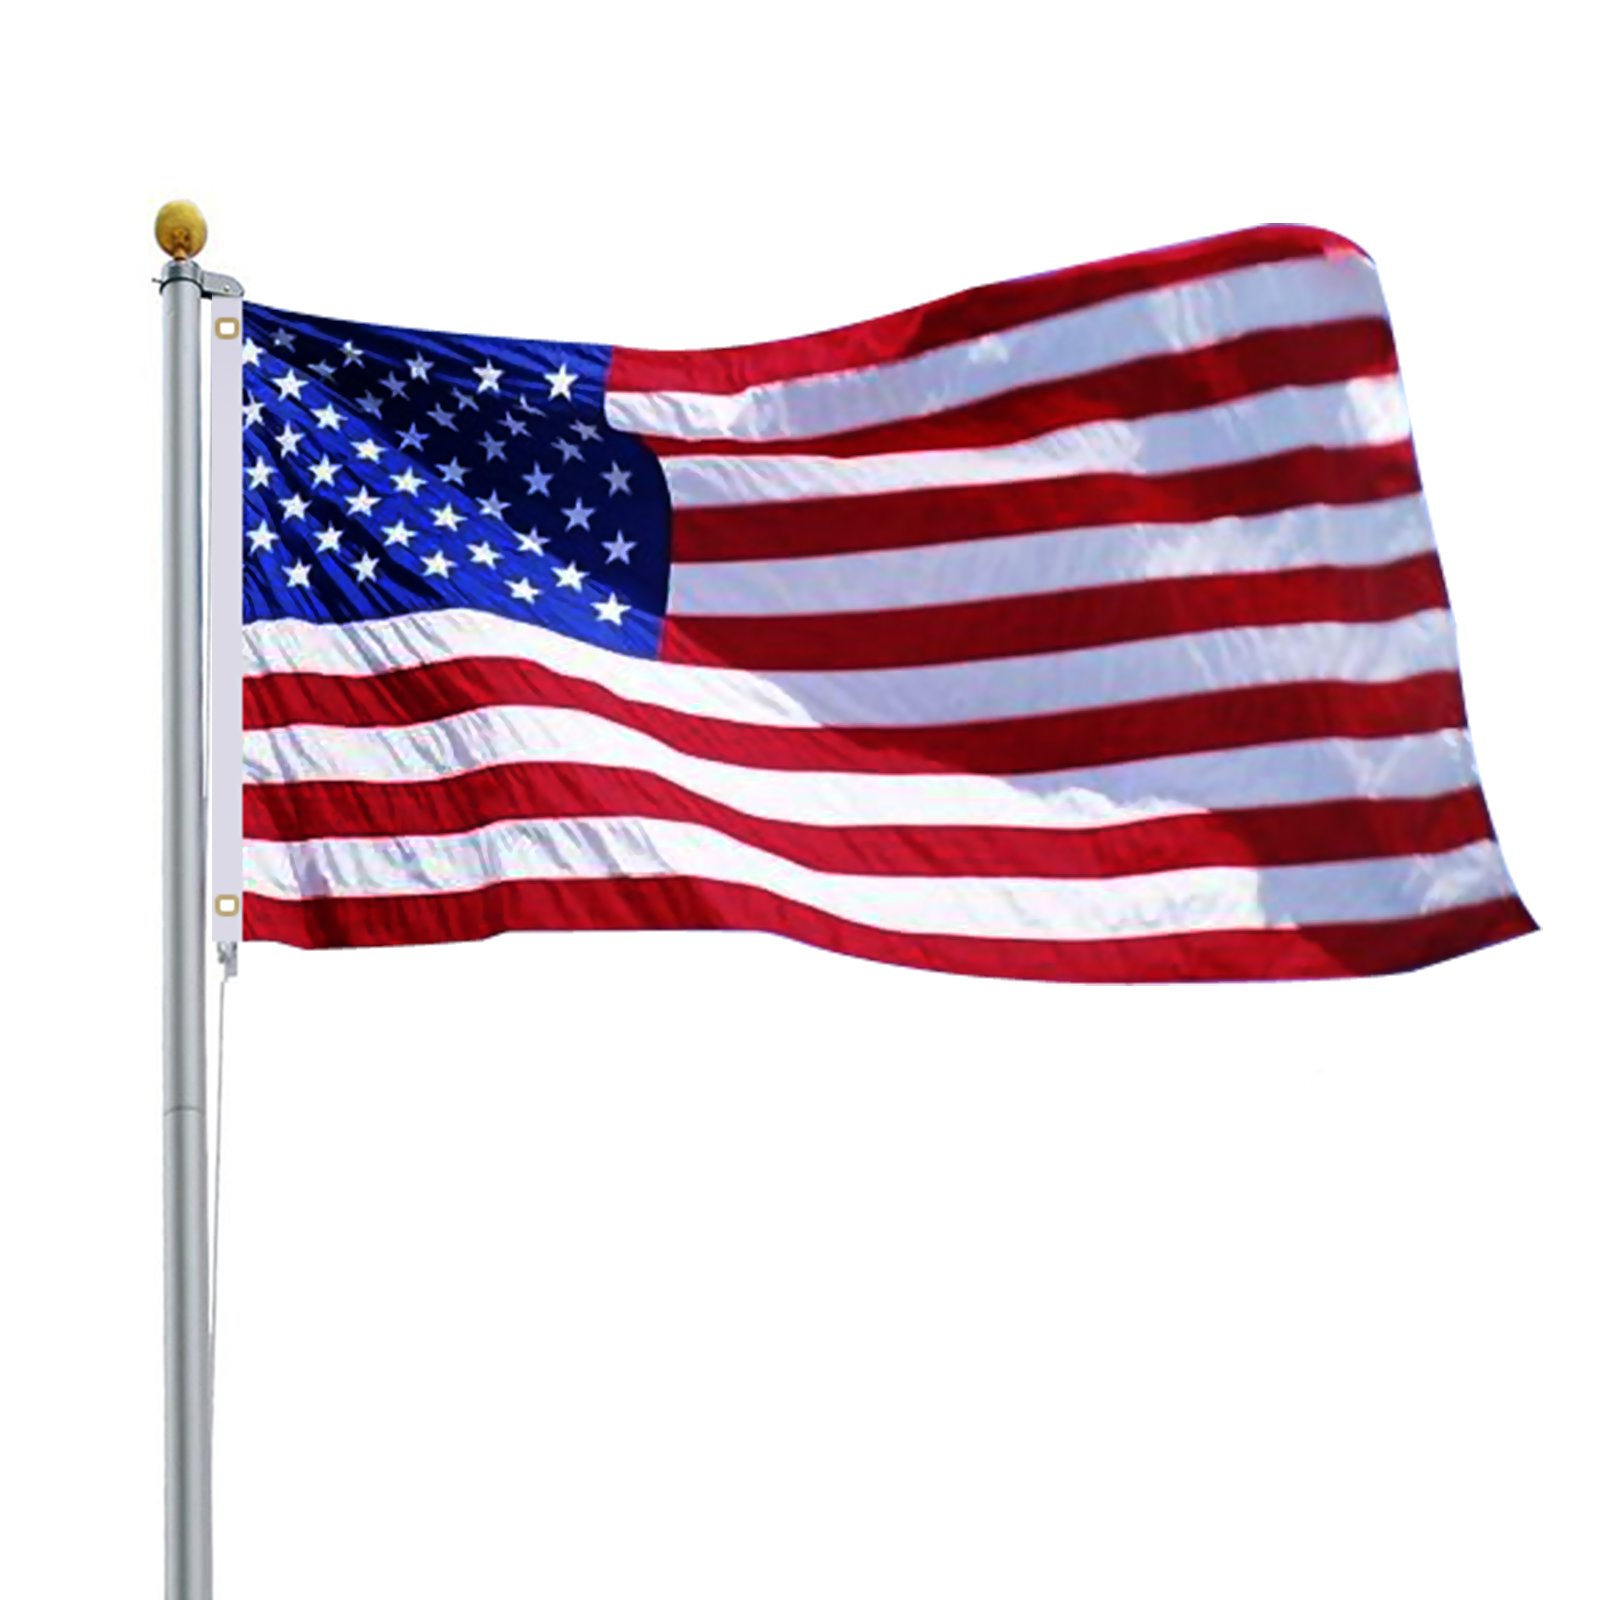 ZENY 16FT Sectional Flag Pole 3'x5' US Flag and Ball Top Kit Flagpole Outdoor Garden Halyard Pole Construction Heavy Duty Hardware